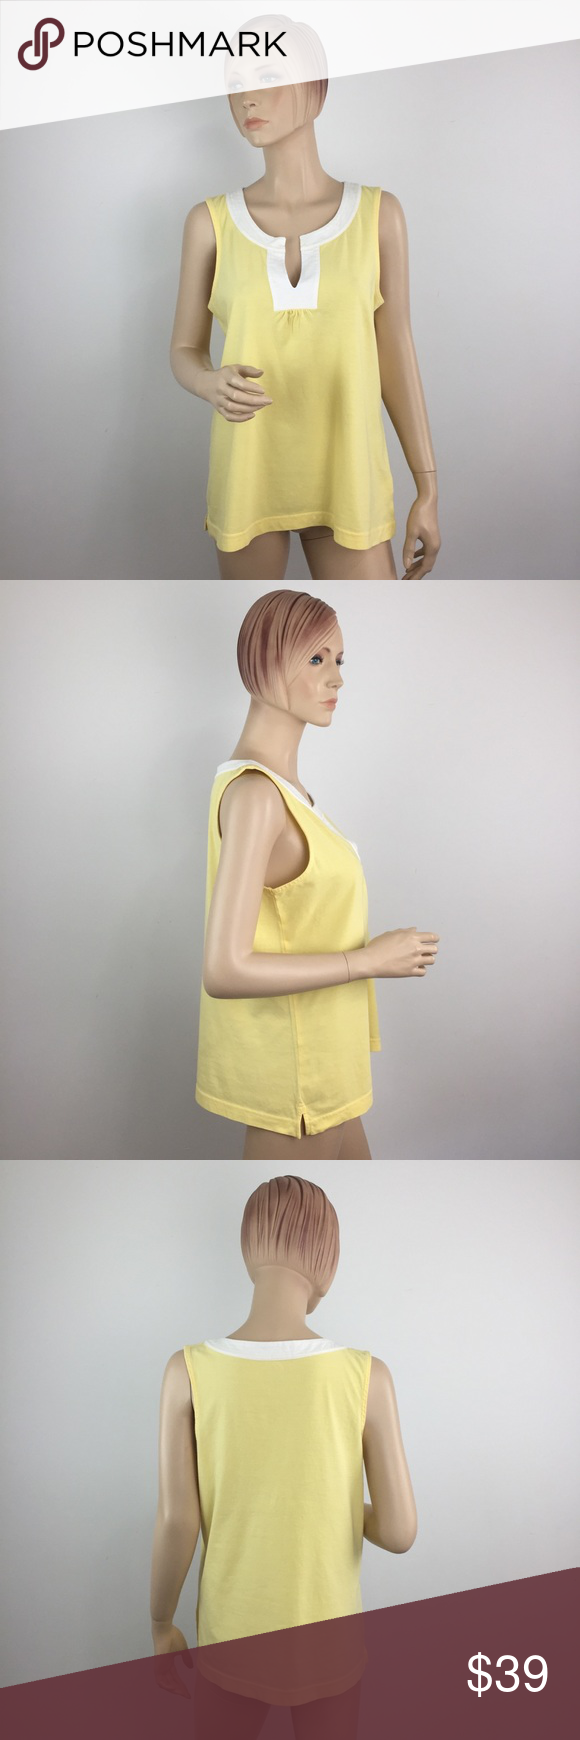 80de9fb227004f Lilly Pulitzer Starfruit Yellow Bidi Tank Medium • New without tags. •  Yellow With White Contrast Trim • Sleeveless • Split Neck • Style  77963  Lilly ...